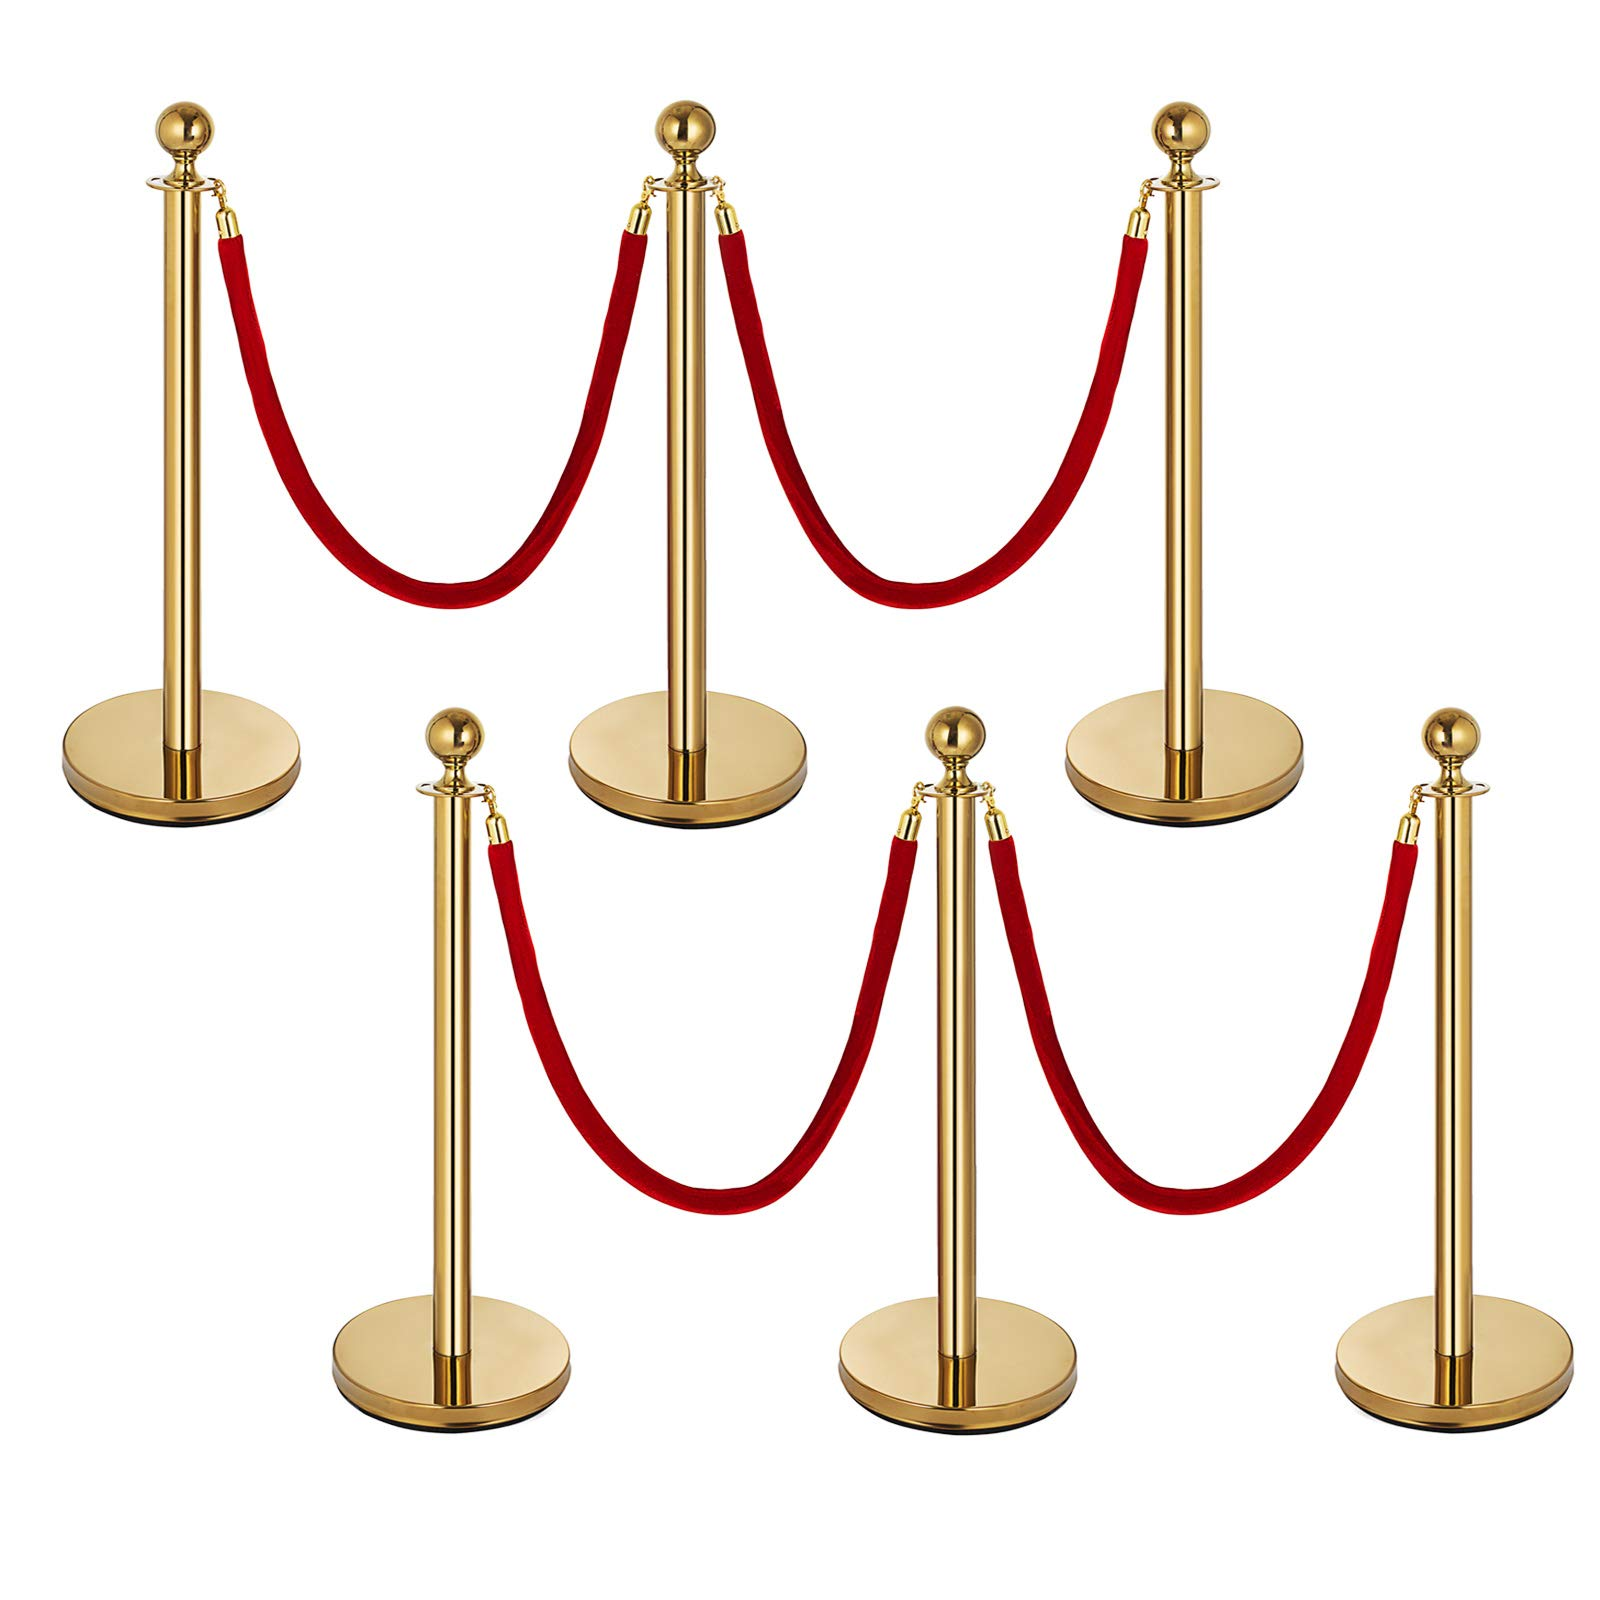 Mophorn 6Pack Gold Stanchion Post Queue Rope Barriers 4 Red Velvet Ropes 38In Crowd Control Barrier Queue Line by Mophorn